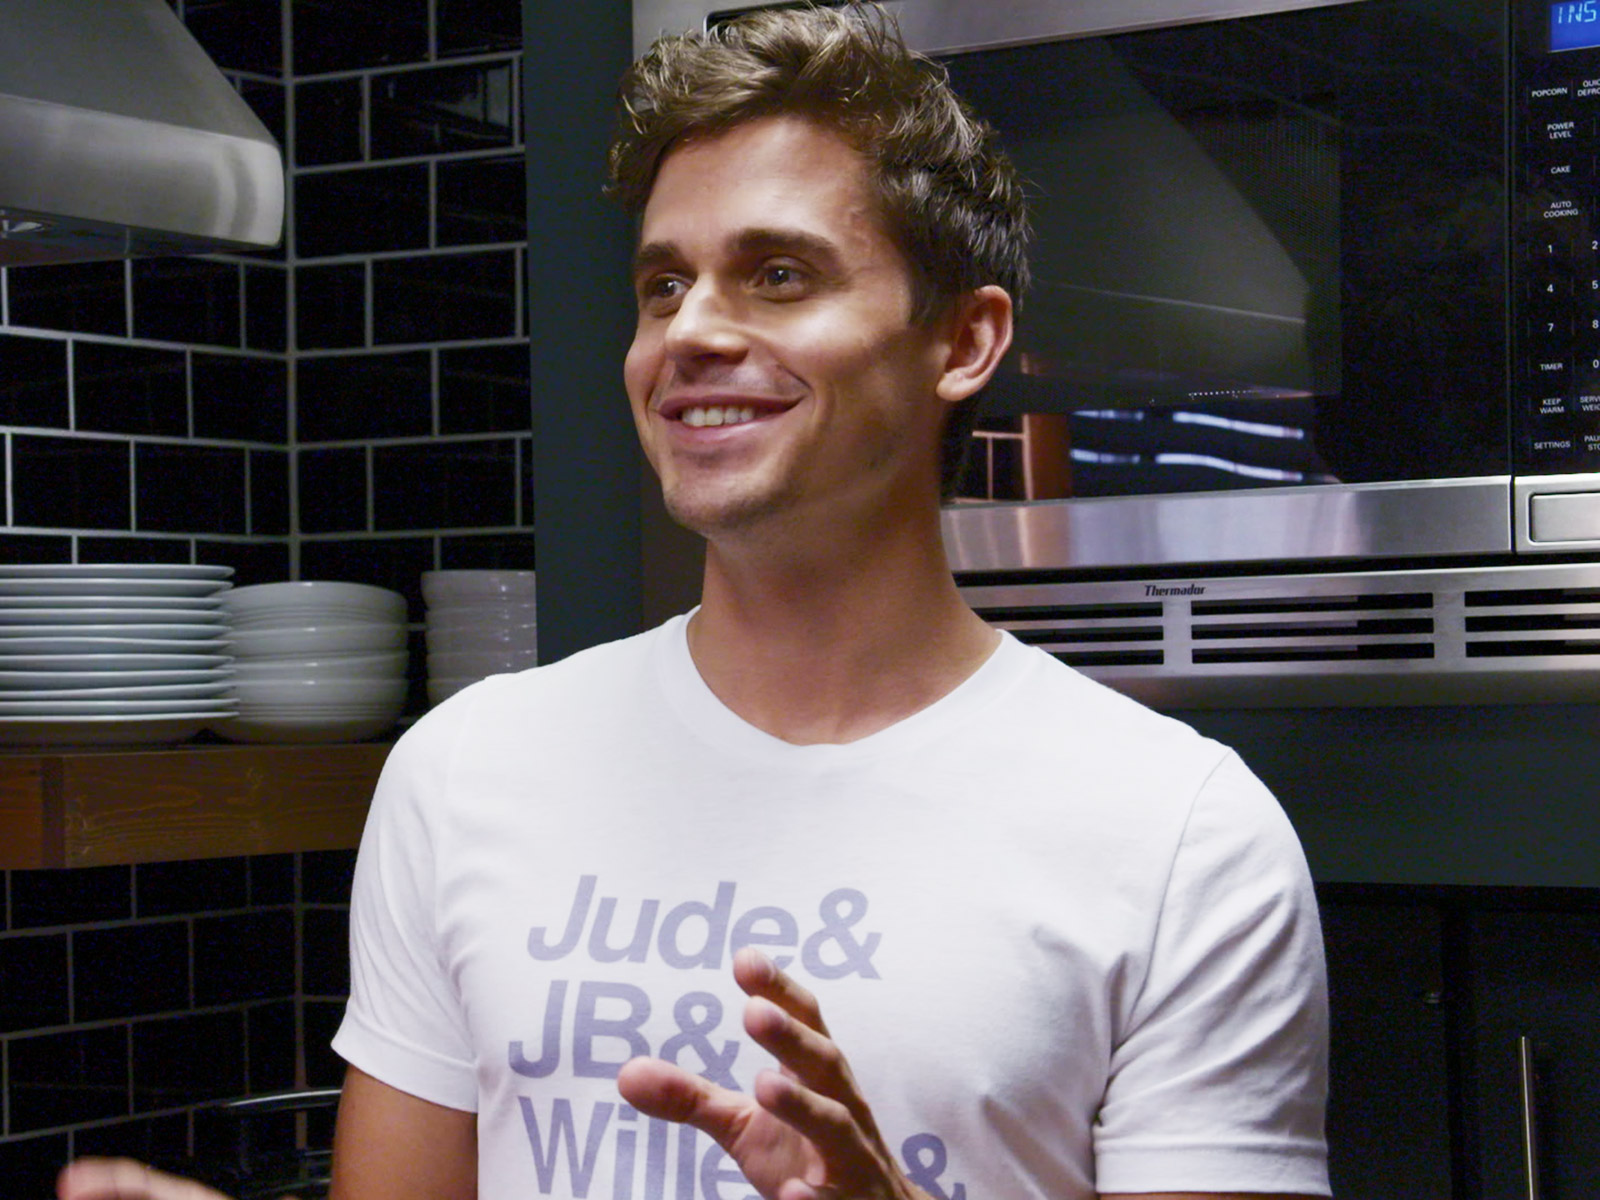 Antoni Porowski Says His Debut Cookbook Will Be 'Very Personal'